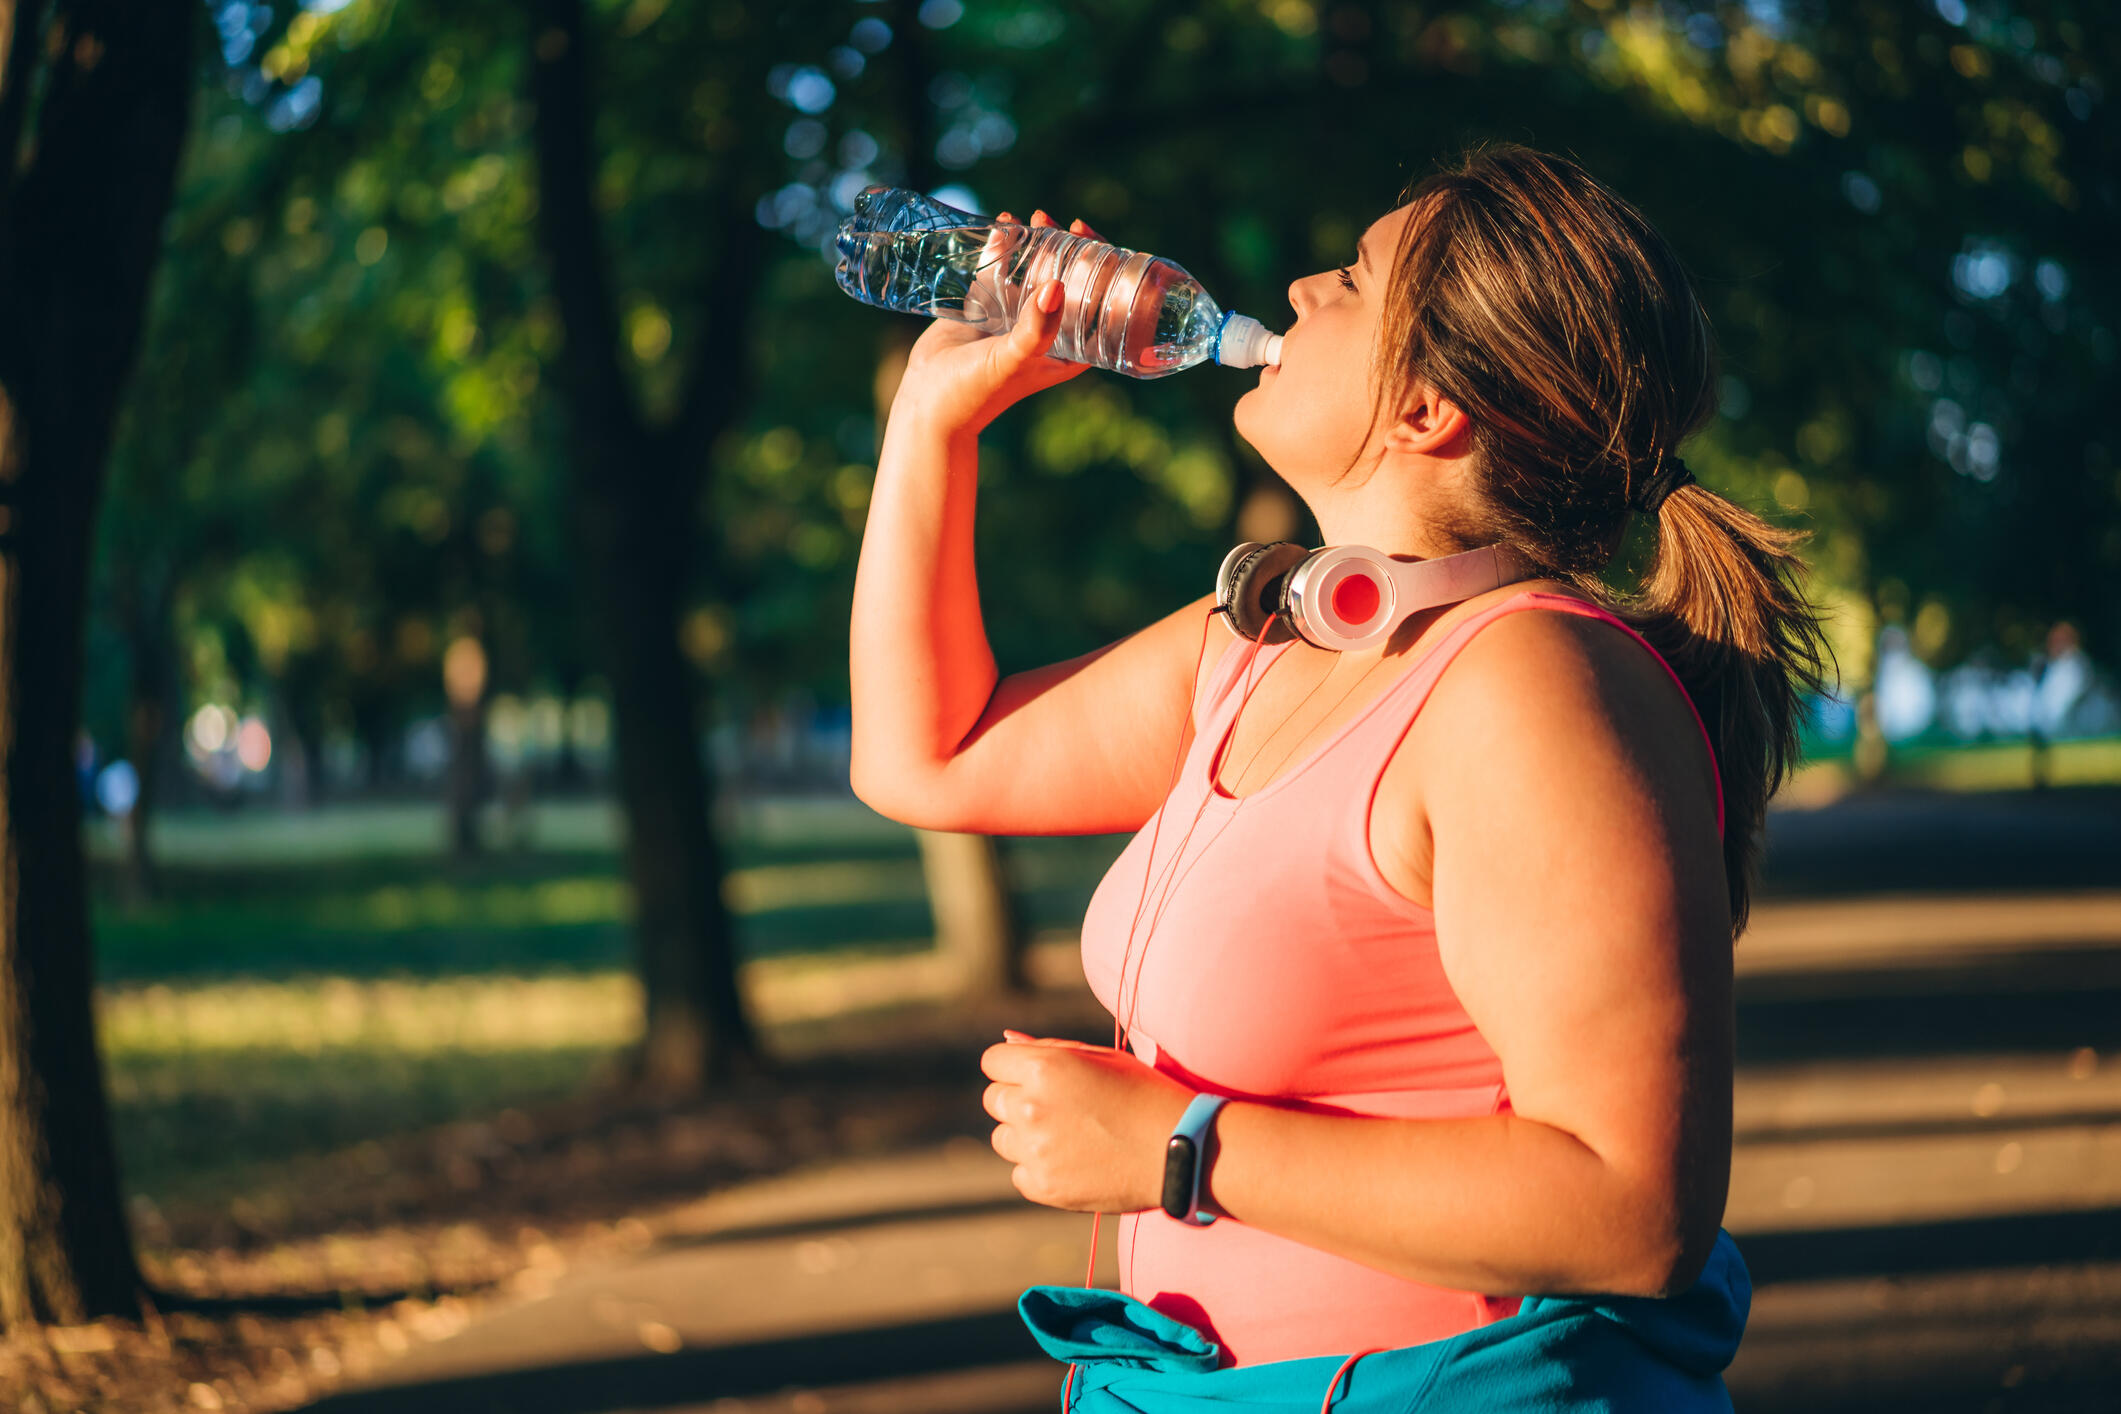 Young woman dressed in workout clothes standing a park, drinking from a plastic water bottle